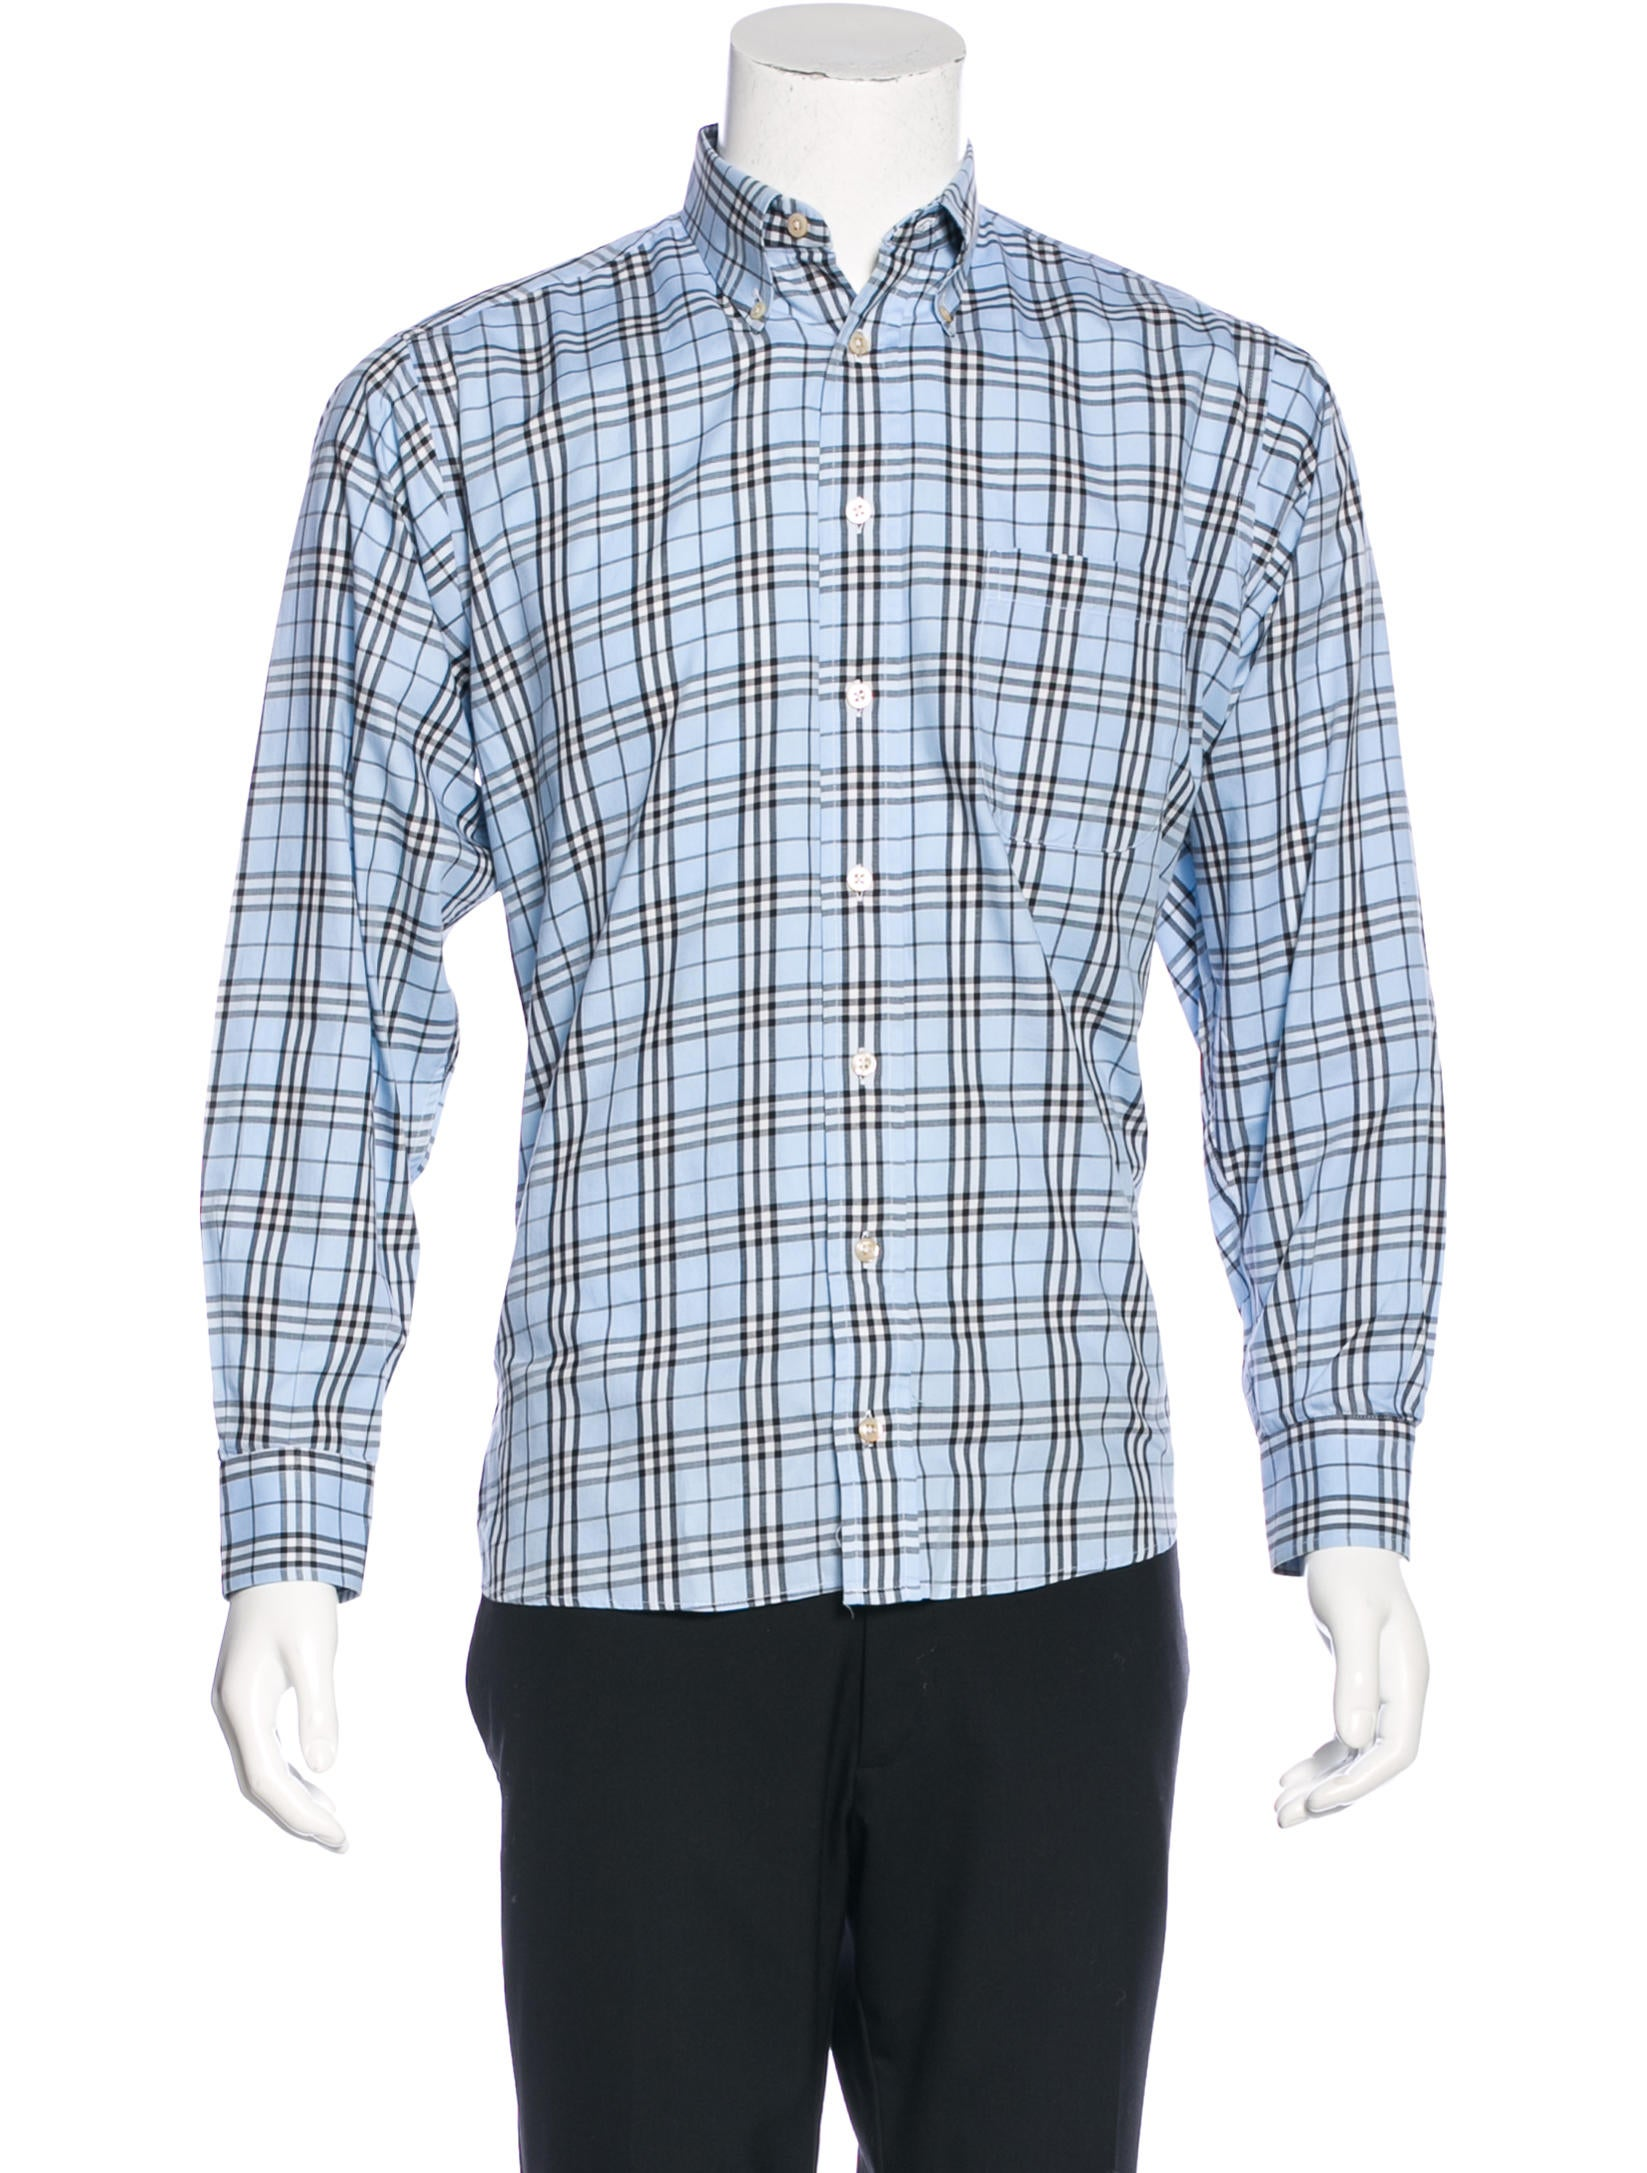 Burberry london nova check dress shirt clothing for Burberry check shirt dress